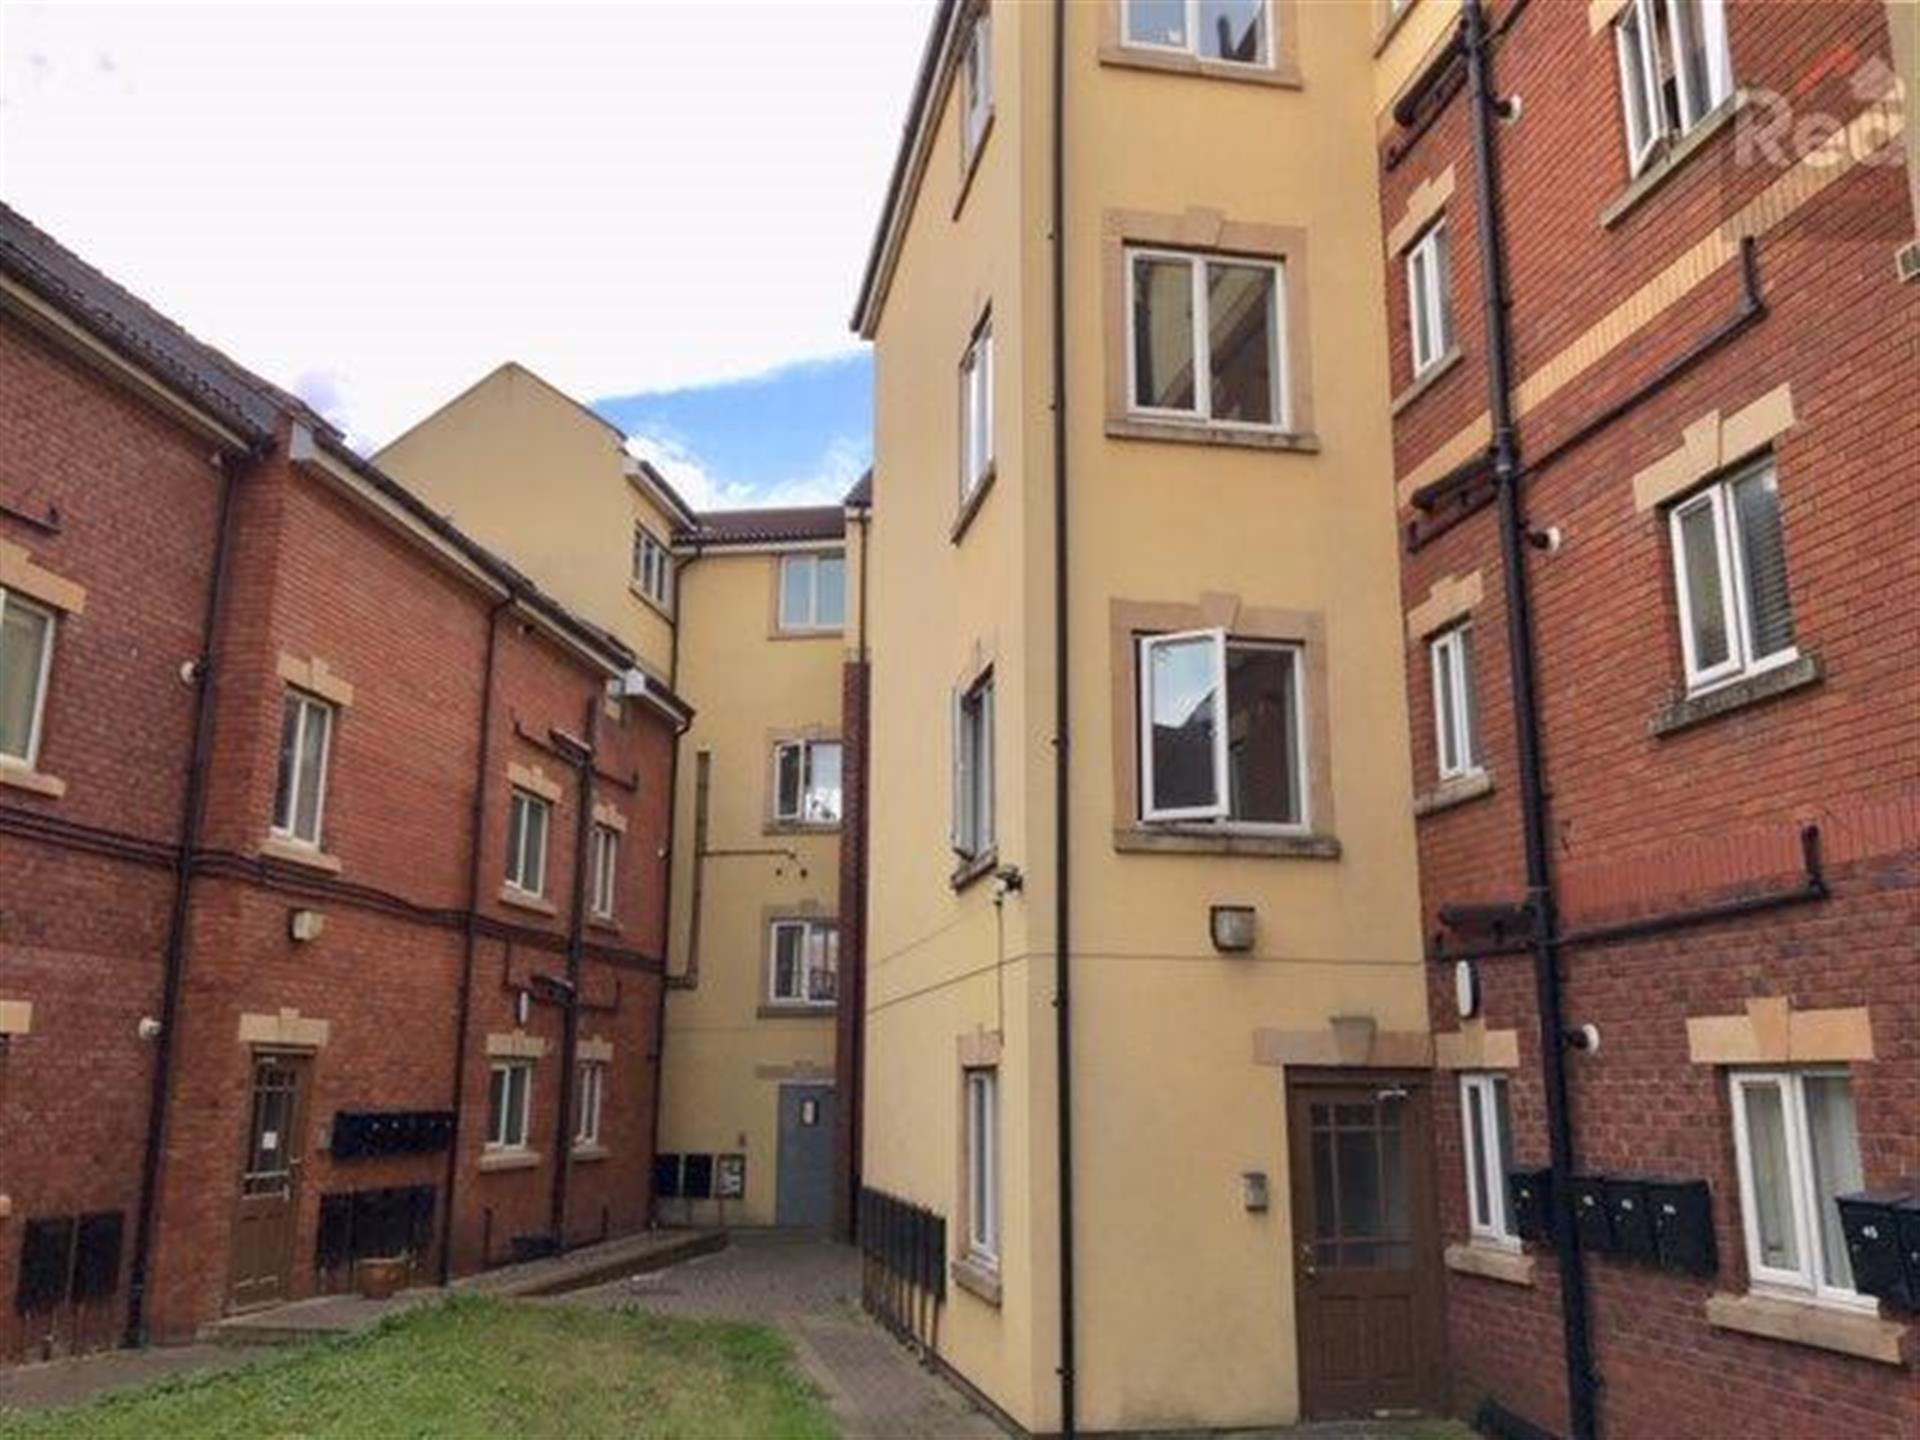 2 bedroom flat flat / apartment To Let in Tindale Crescent, Bishop Auckland - photograph 1.